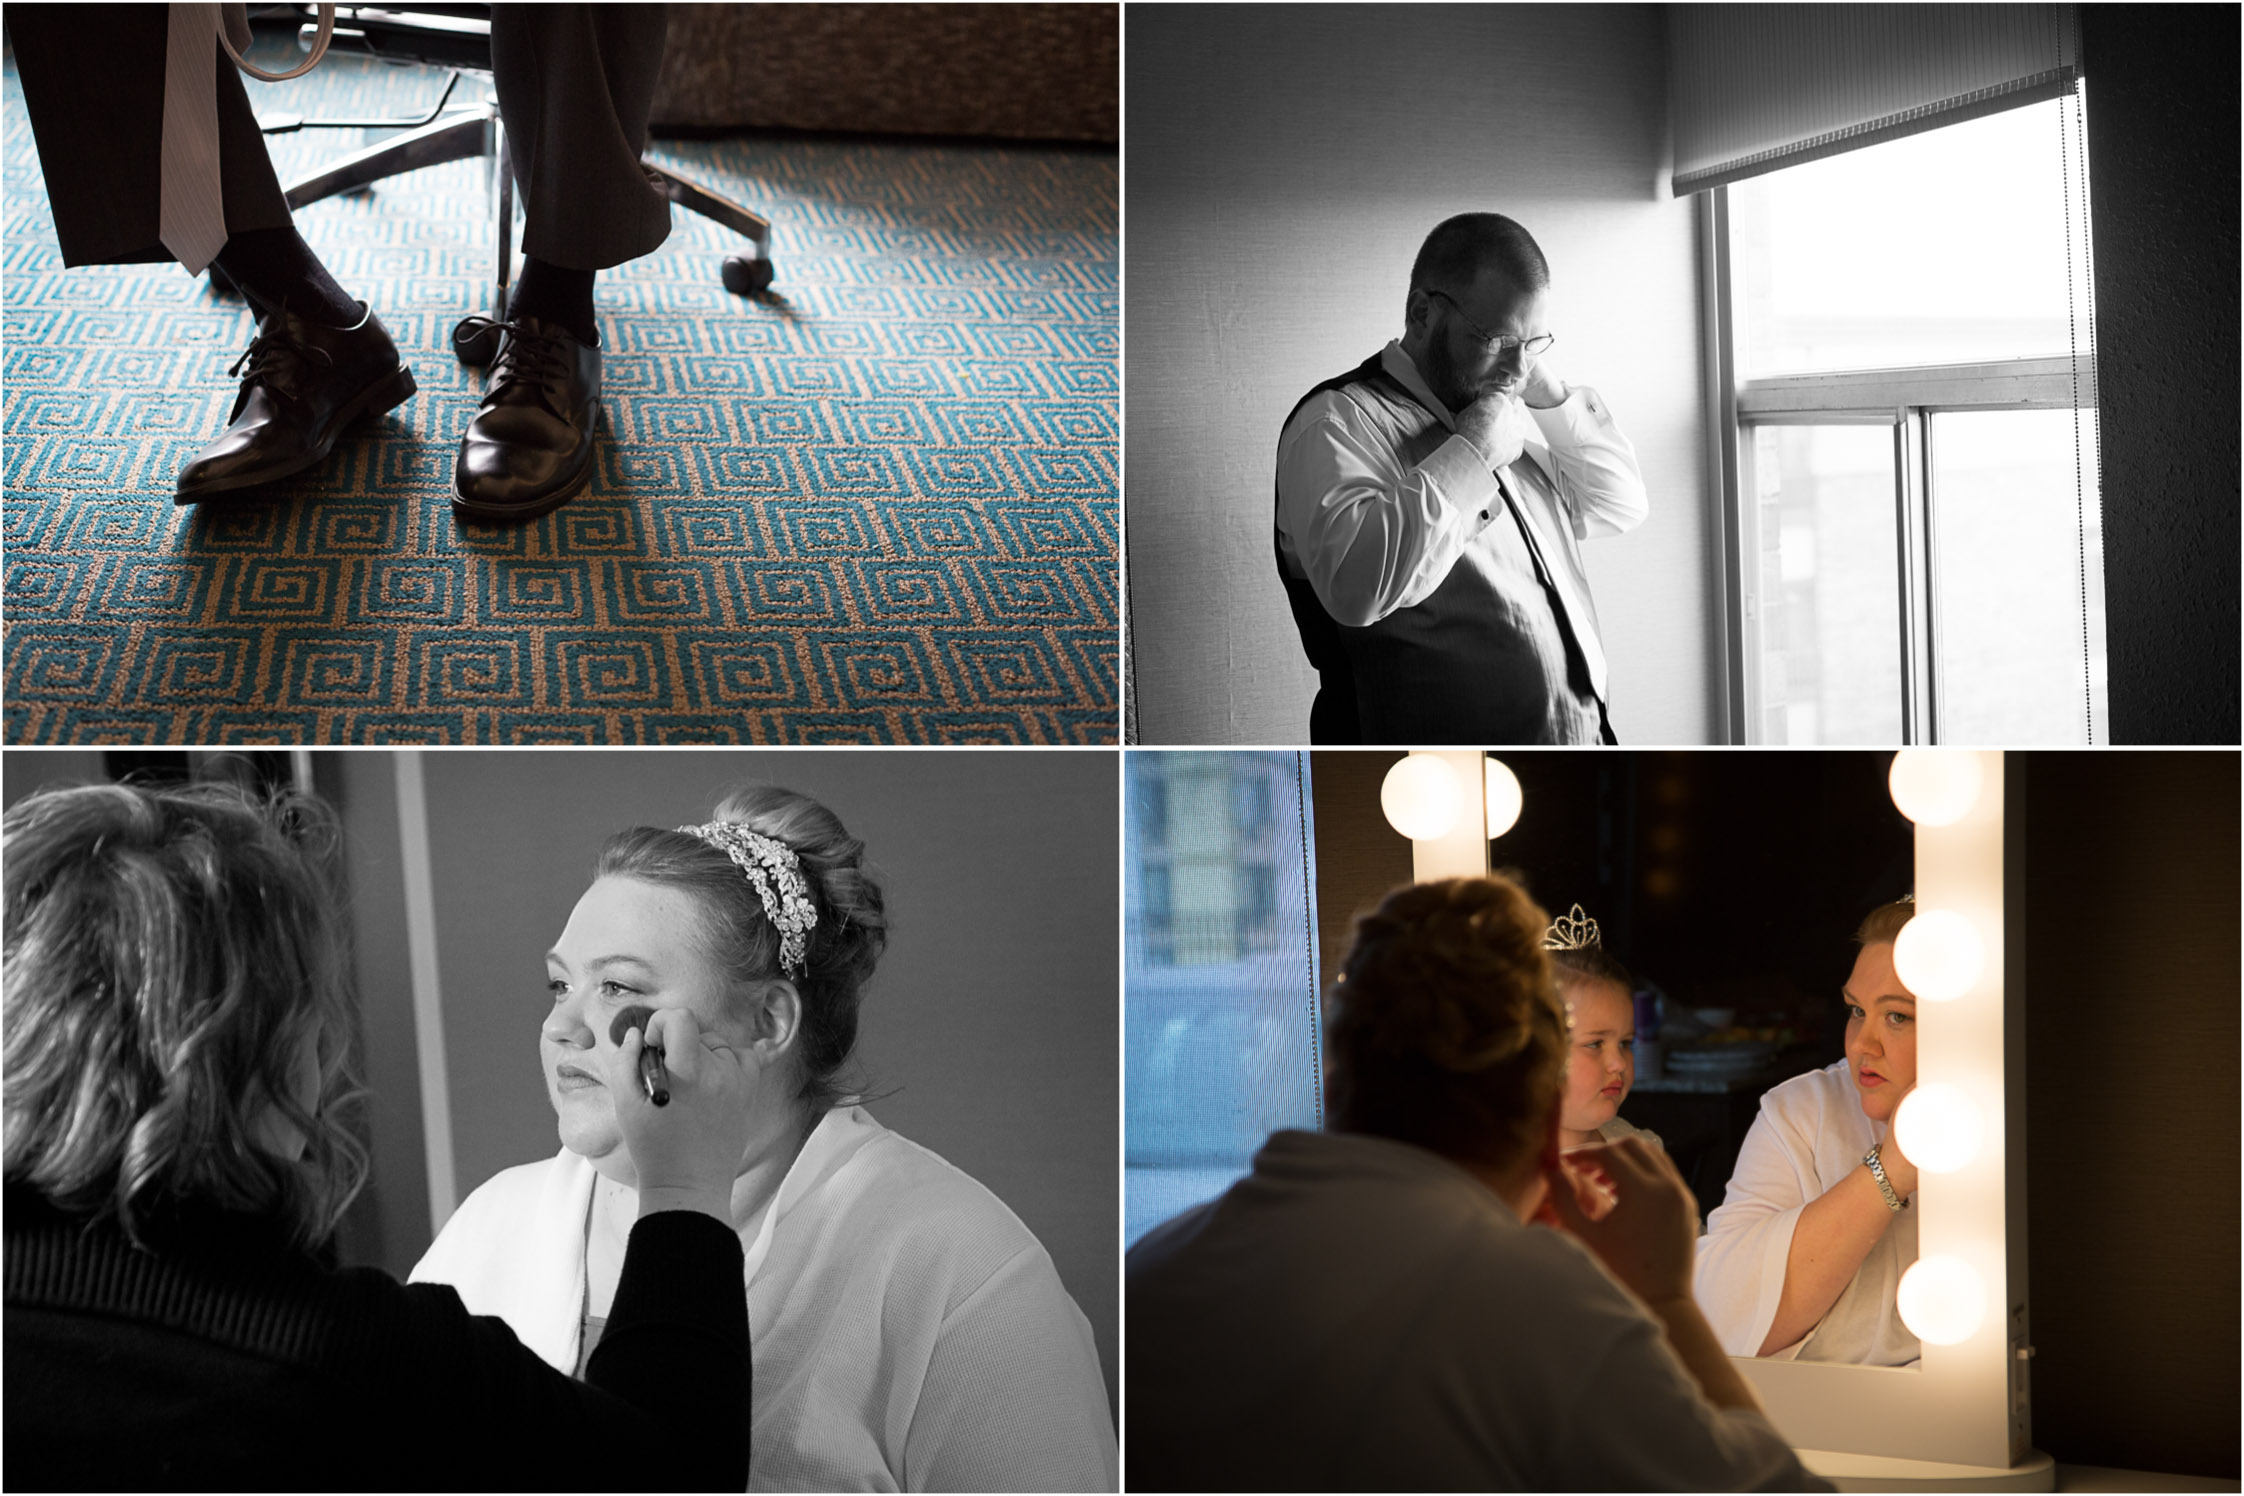 05-wedding-day-bride-and-groom-getting-ready-dream-day-dressing-rooms-hotel-mahonen-photography.jpg